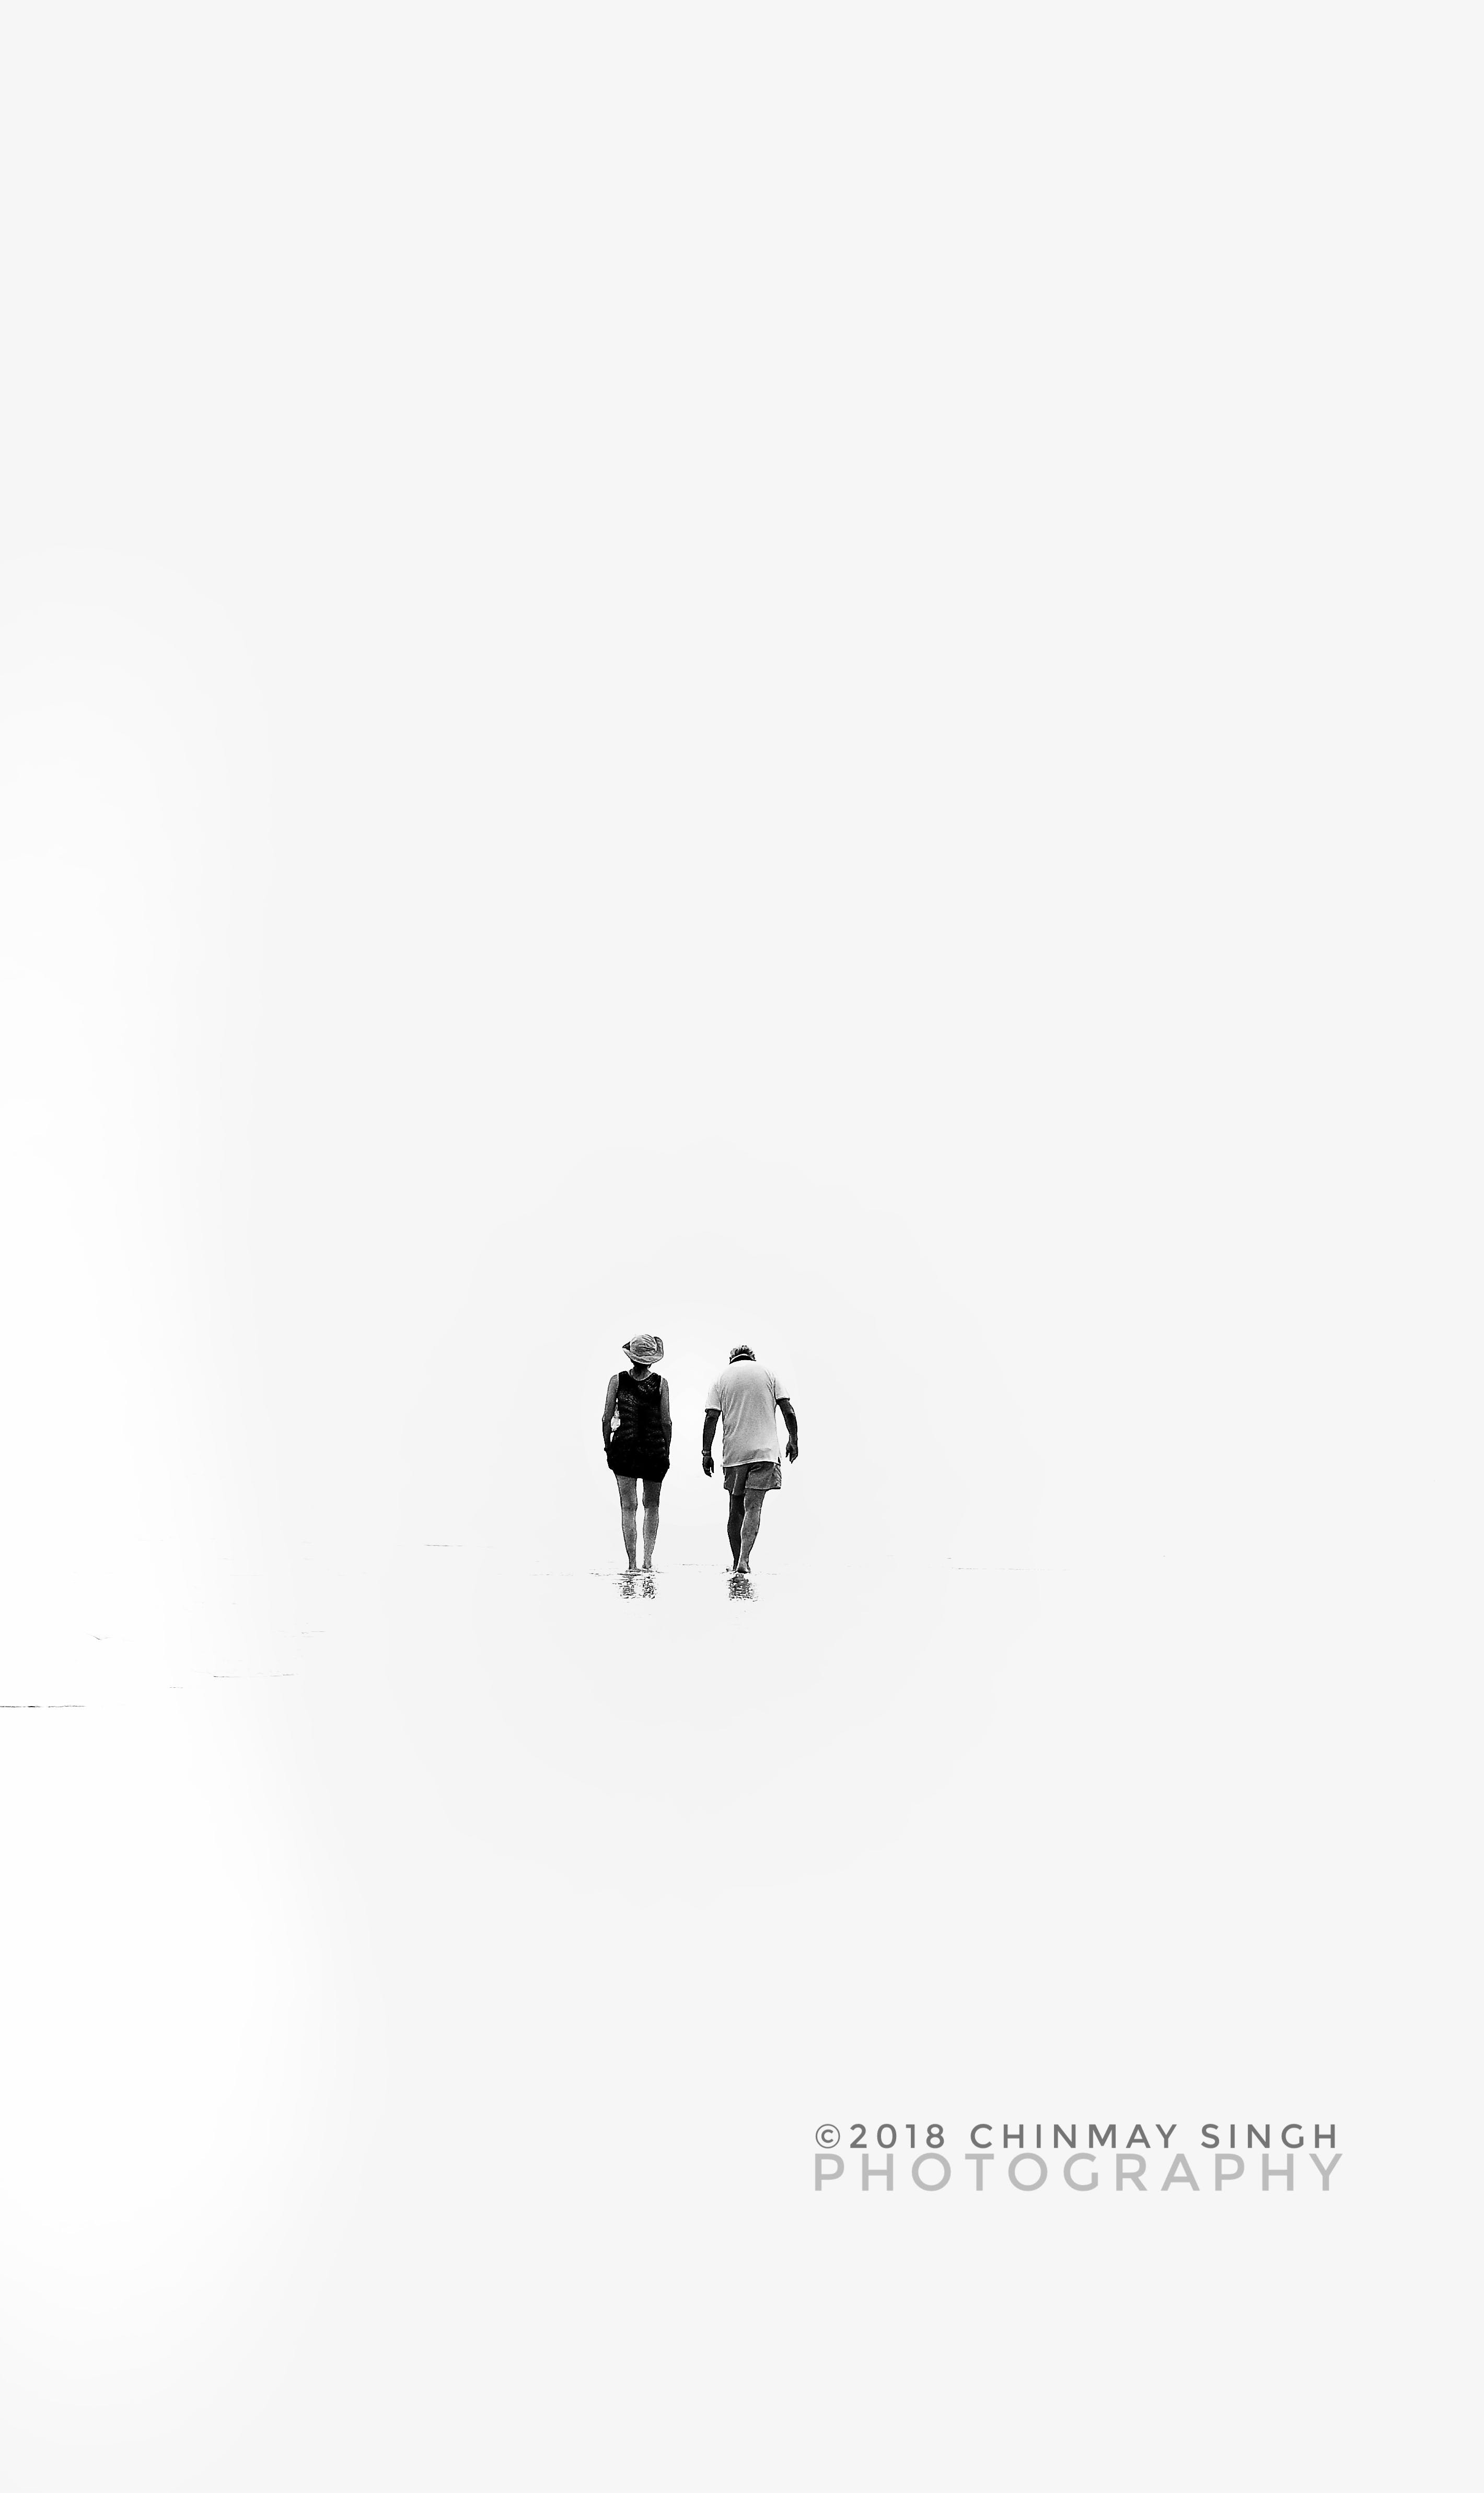 Free stock photo of couple walking